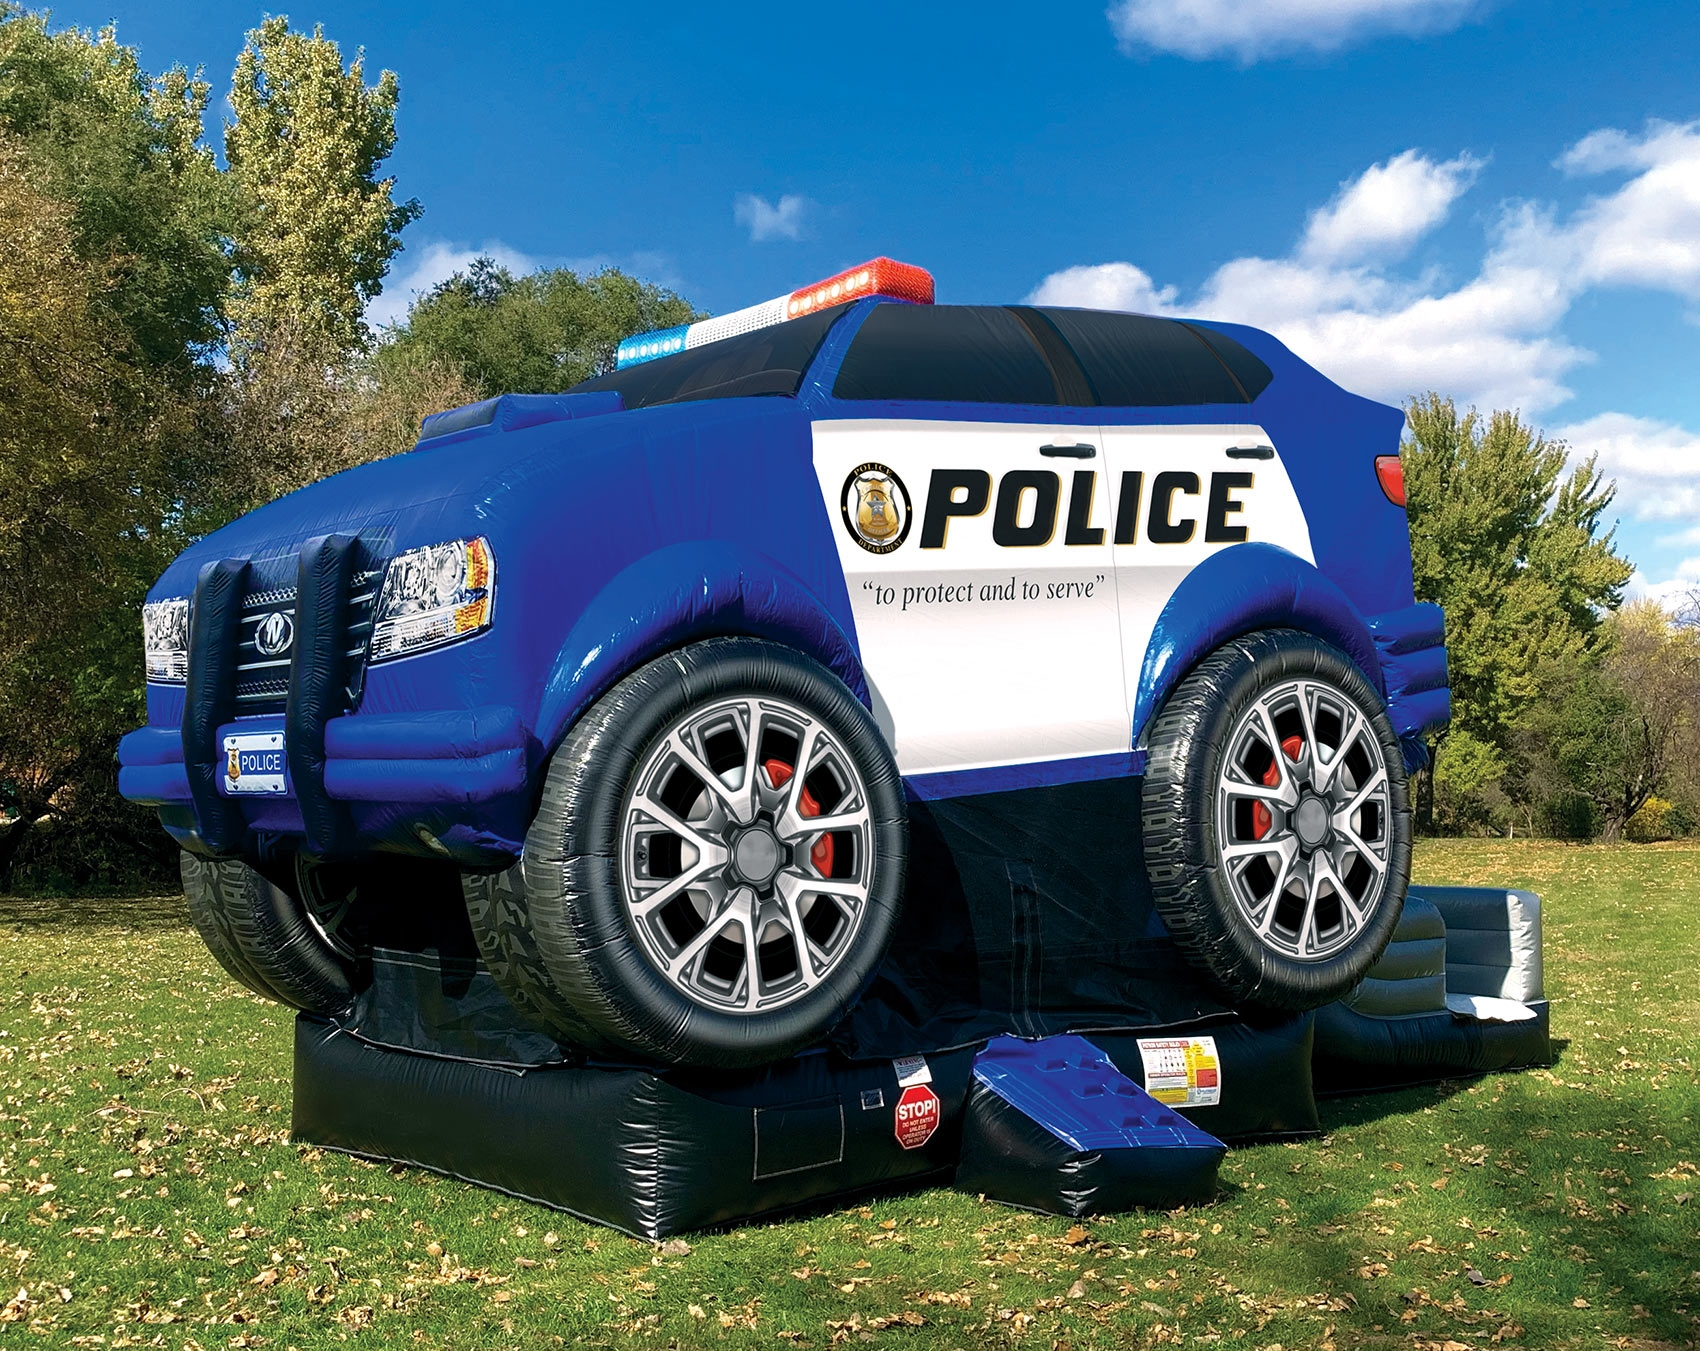 Police Inflatable Bounce House with Slide